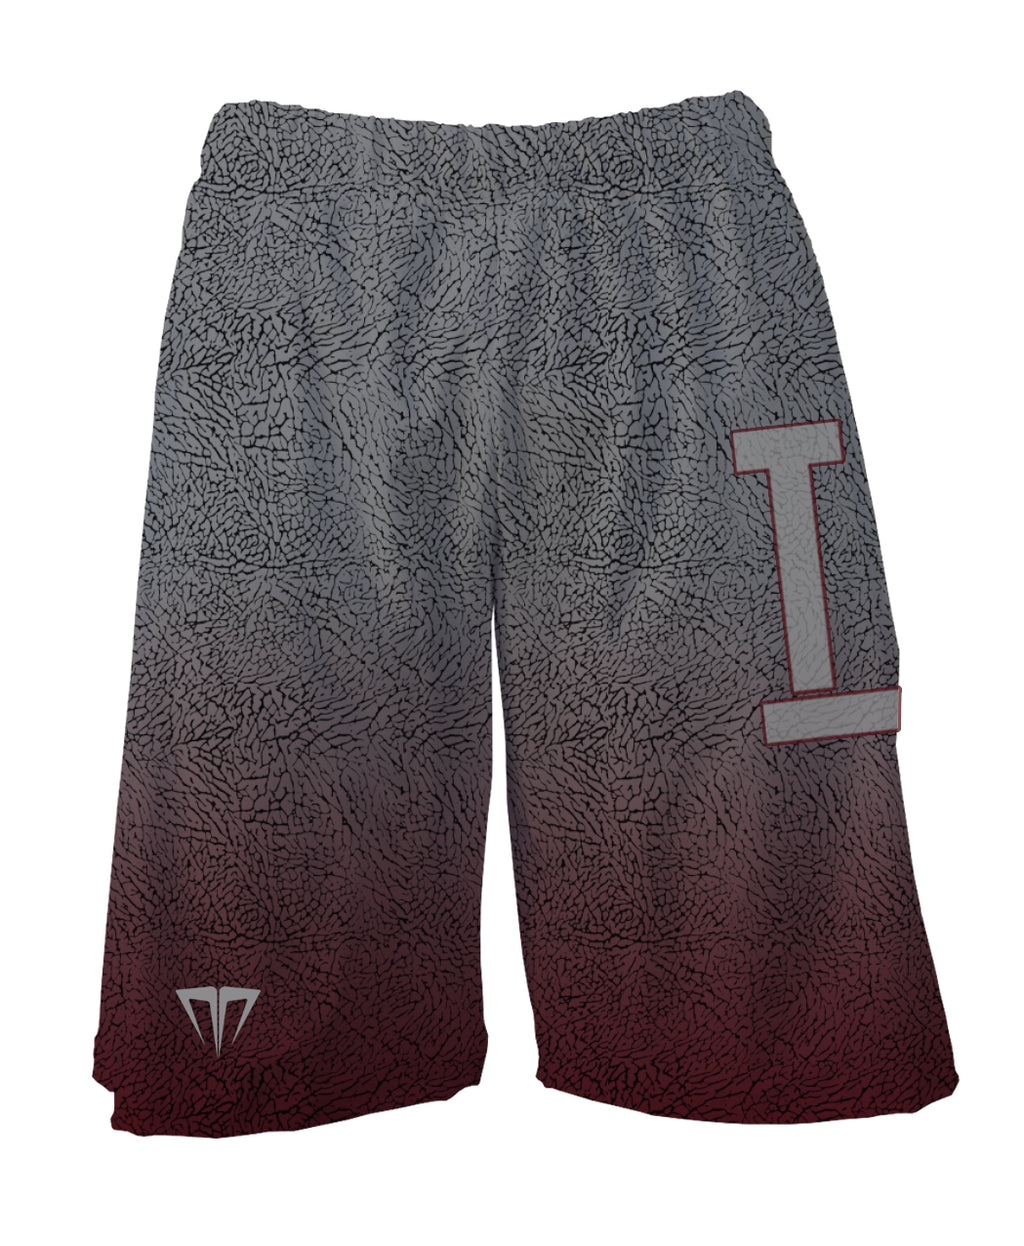 MG LC Ath Fit Shorts